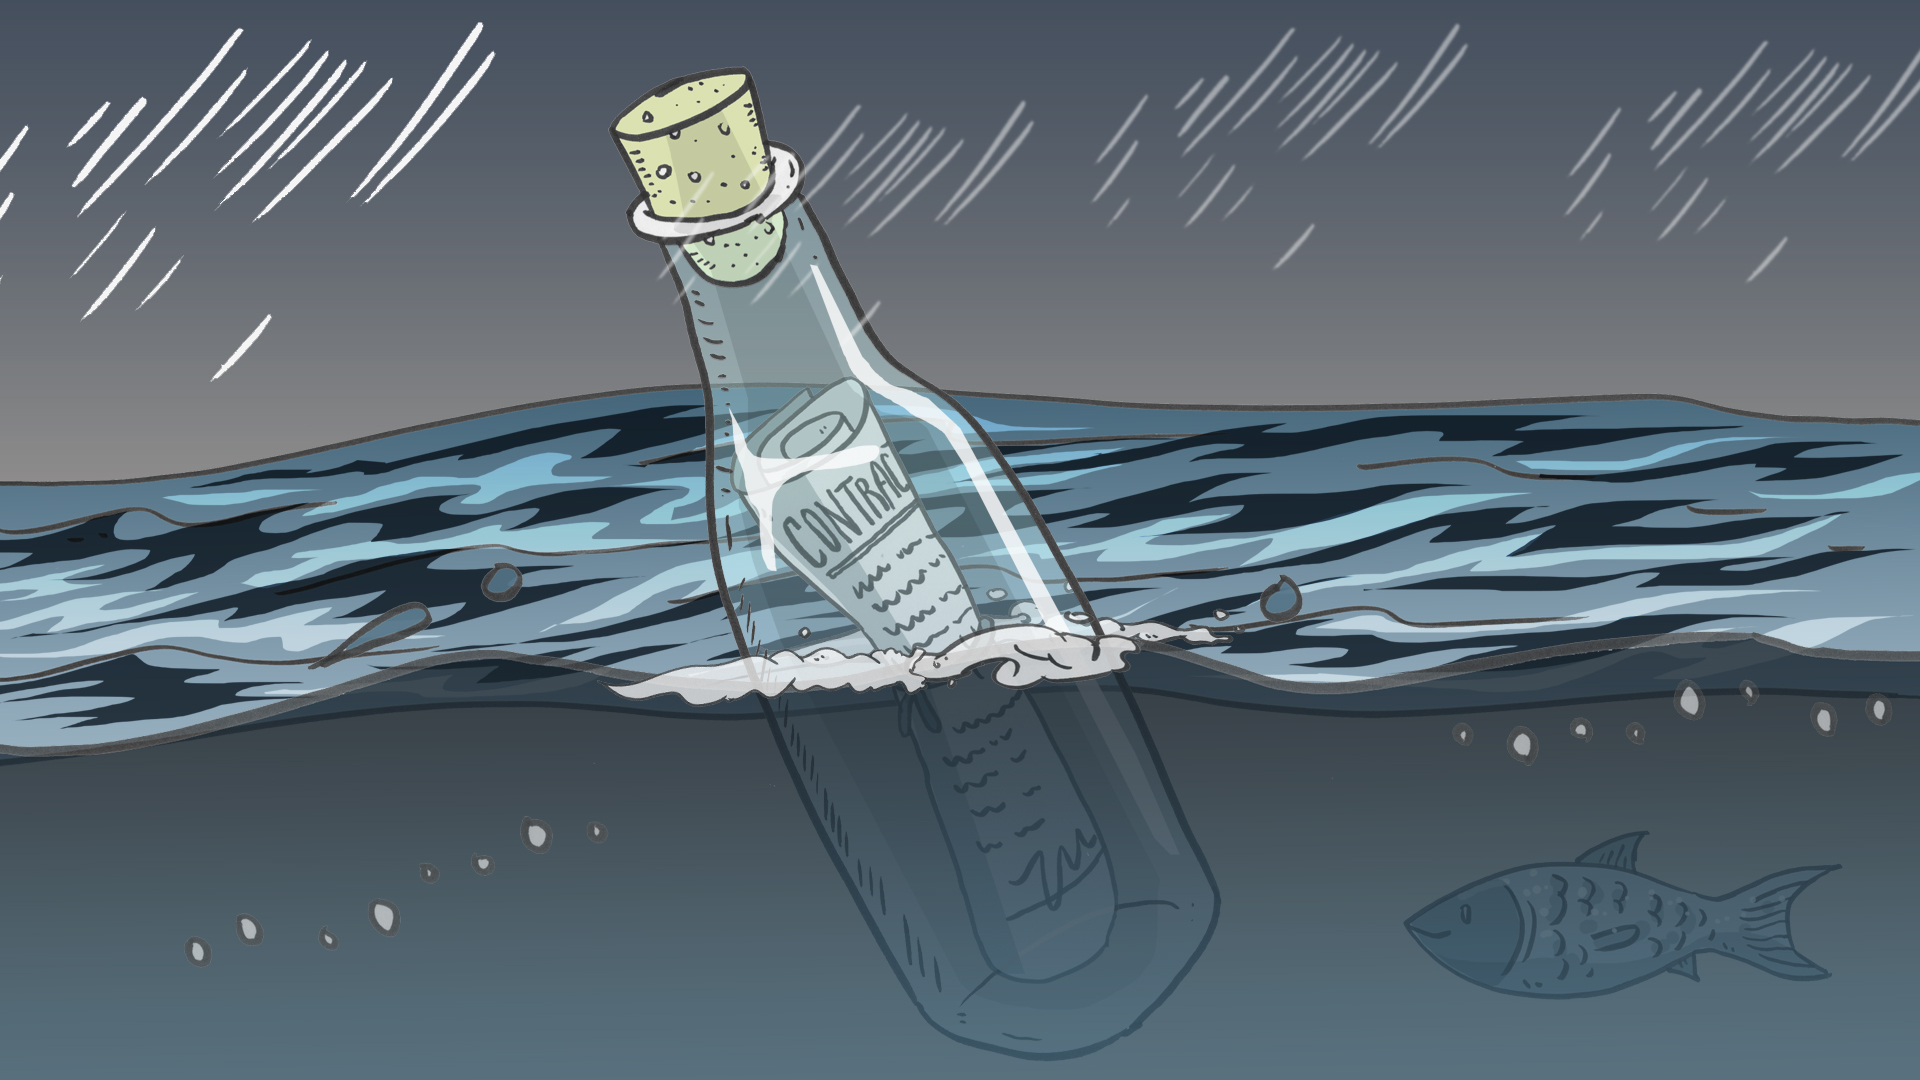 Scene4_SeaMonster_BottleMessage_1920x1080.jpg